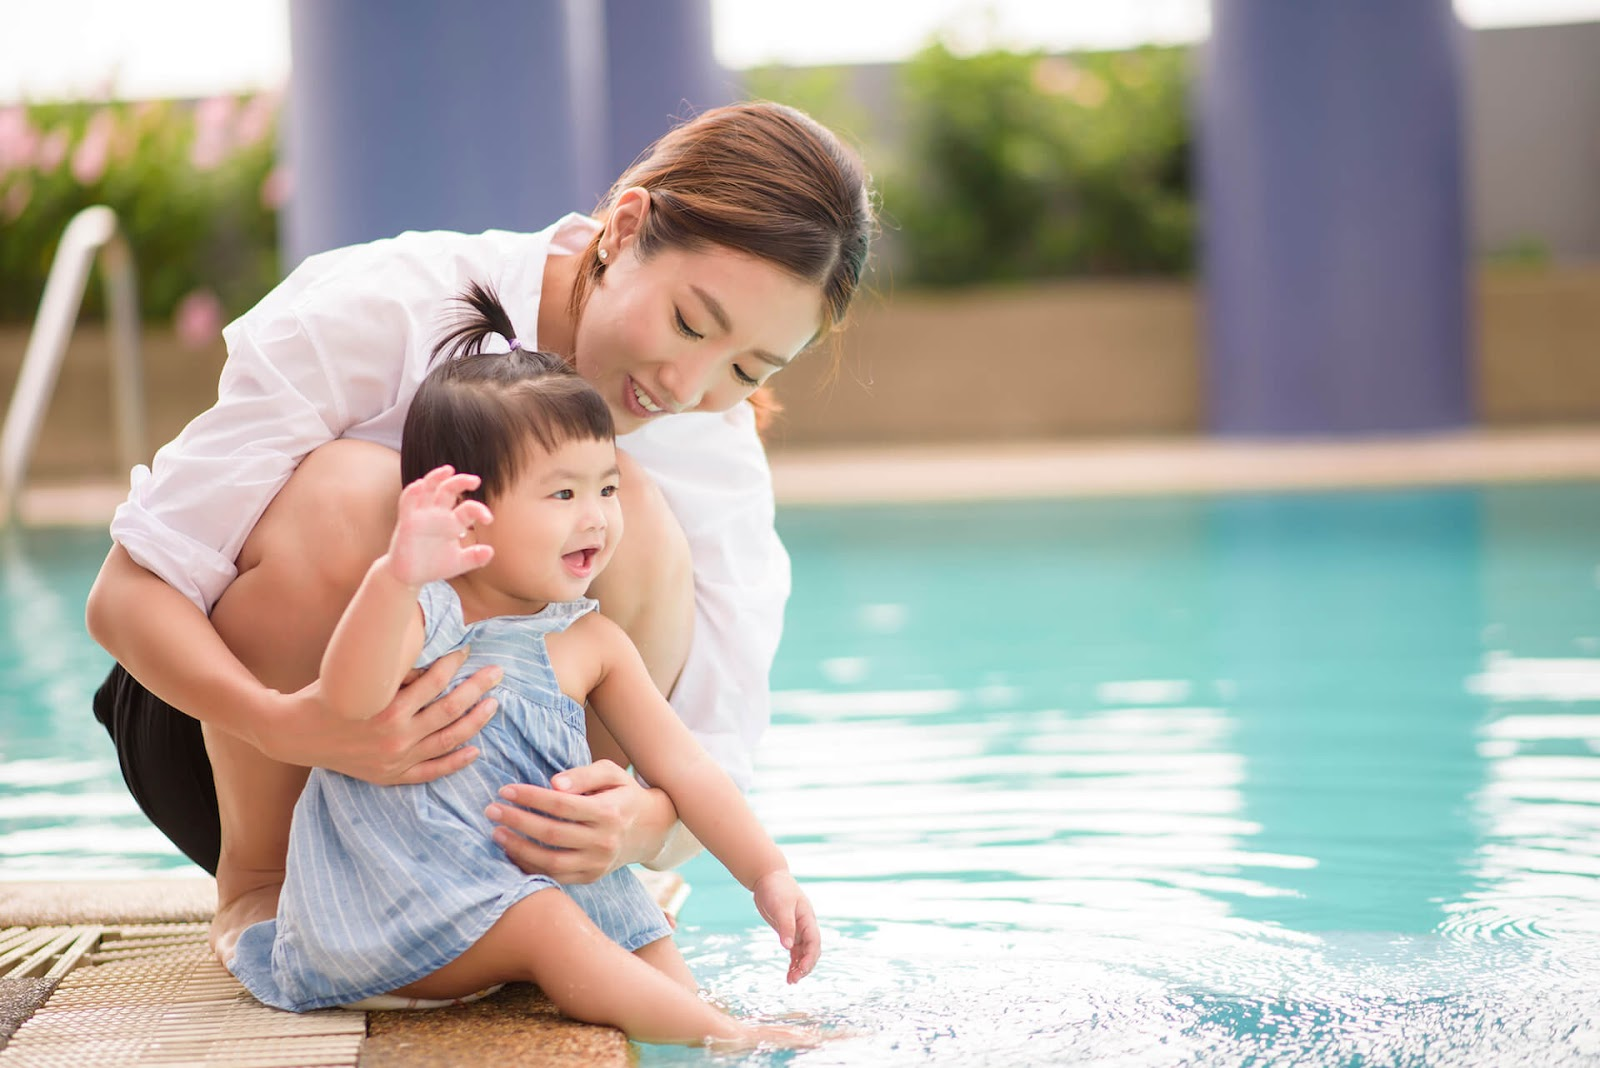 Mom introducing toddler daughter to pool